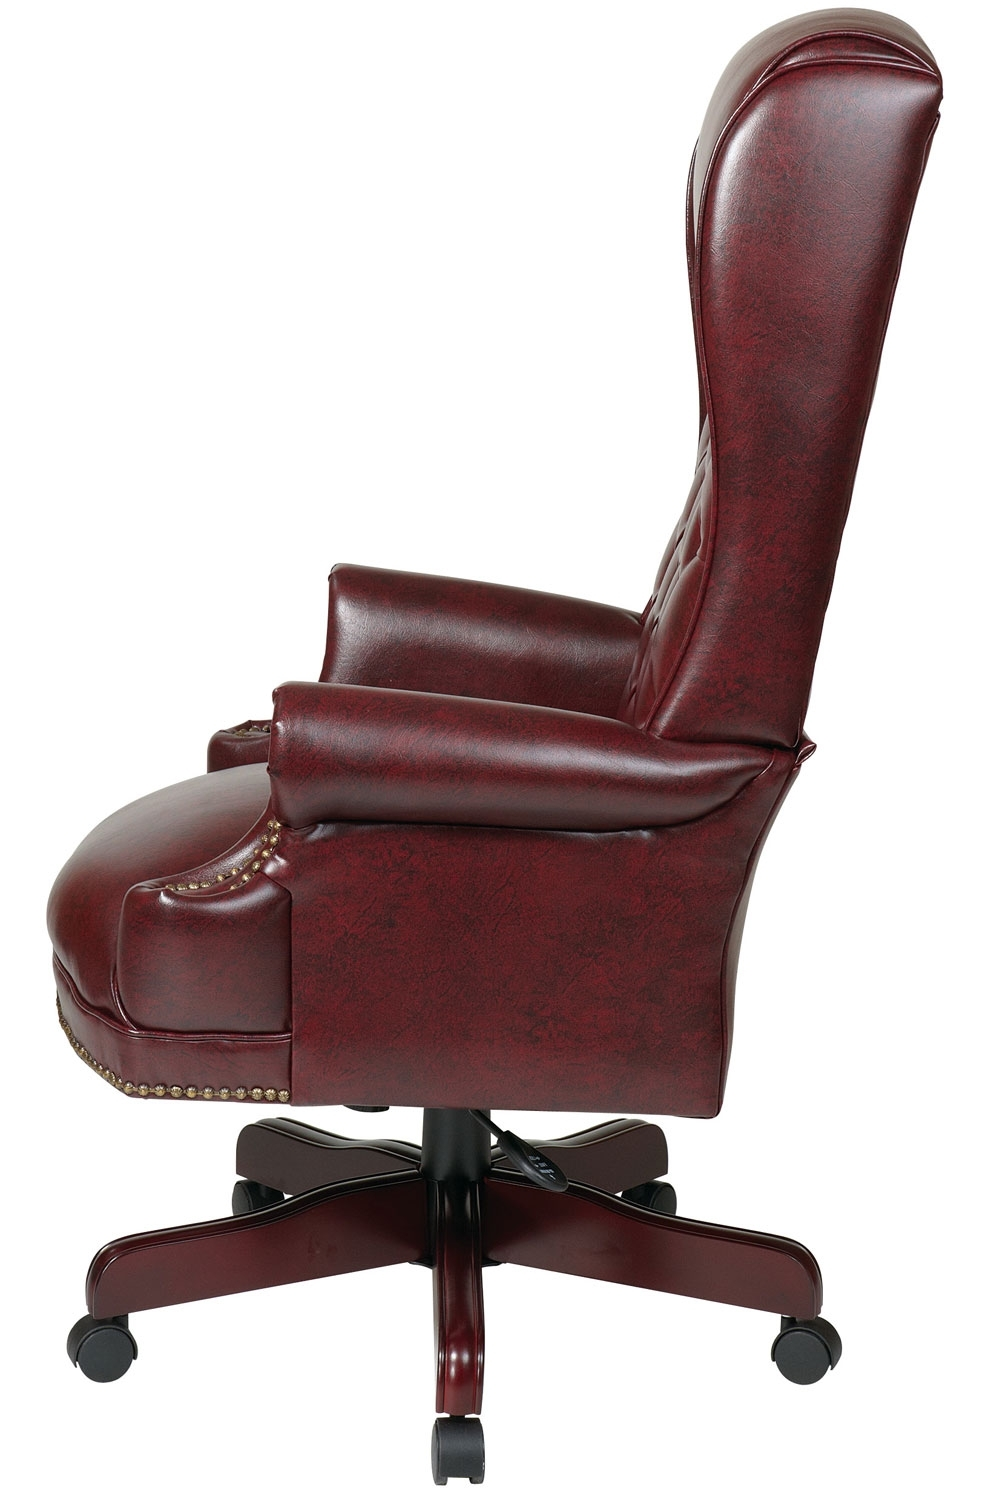 Tex228 Jt4 Office Star – Deluxe High Back Traditional Executive Pertaining To Well Known Executive Office Side Chairs (View 2 of 20)